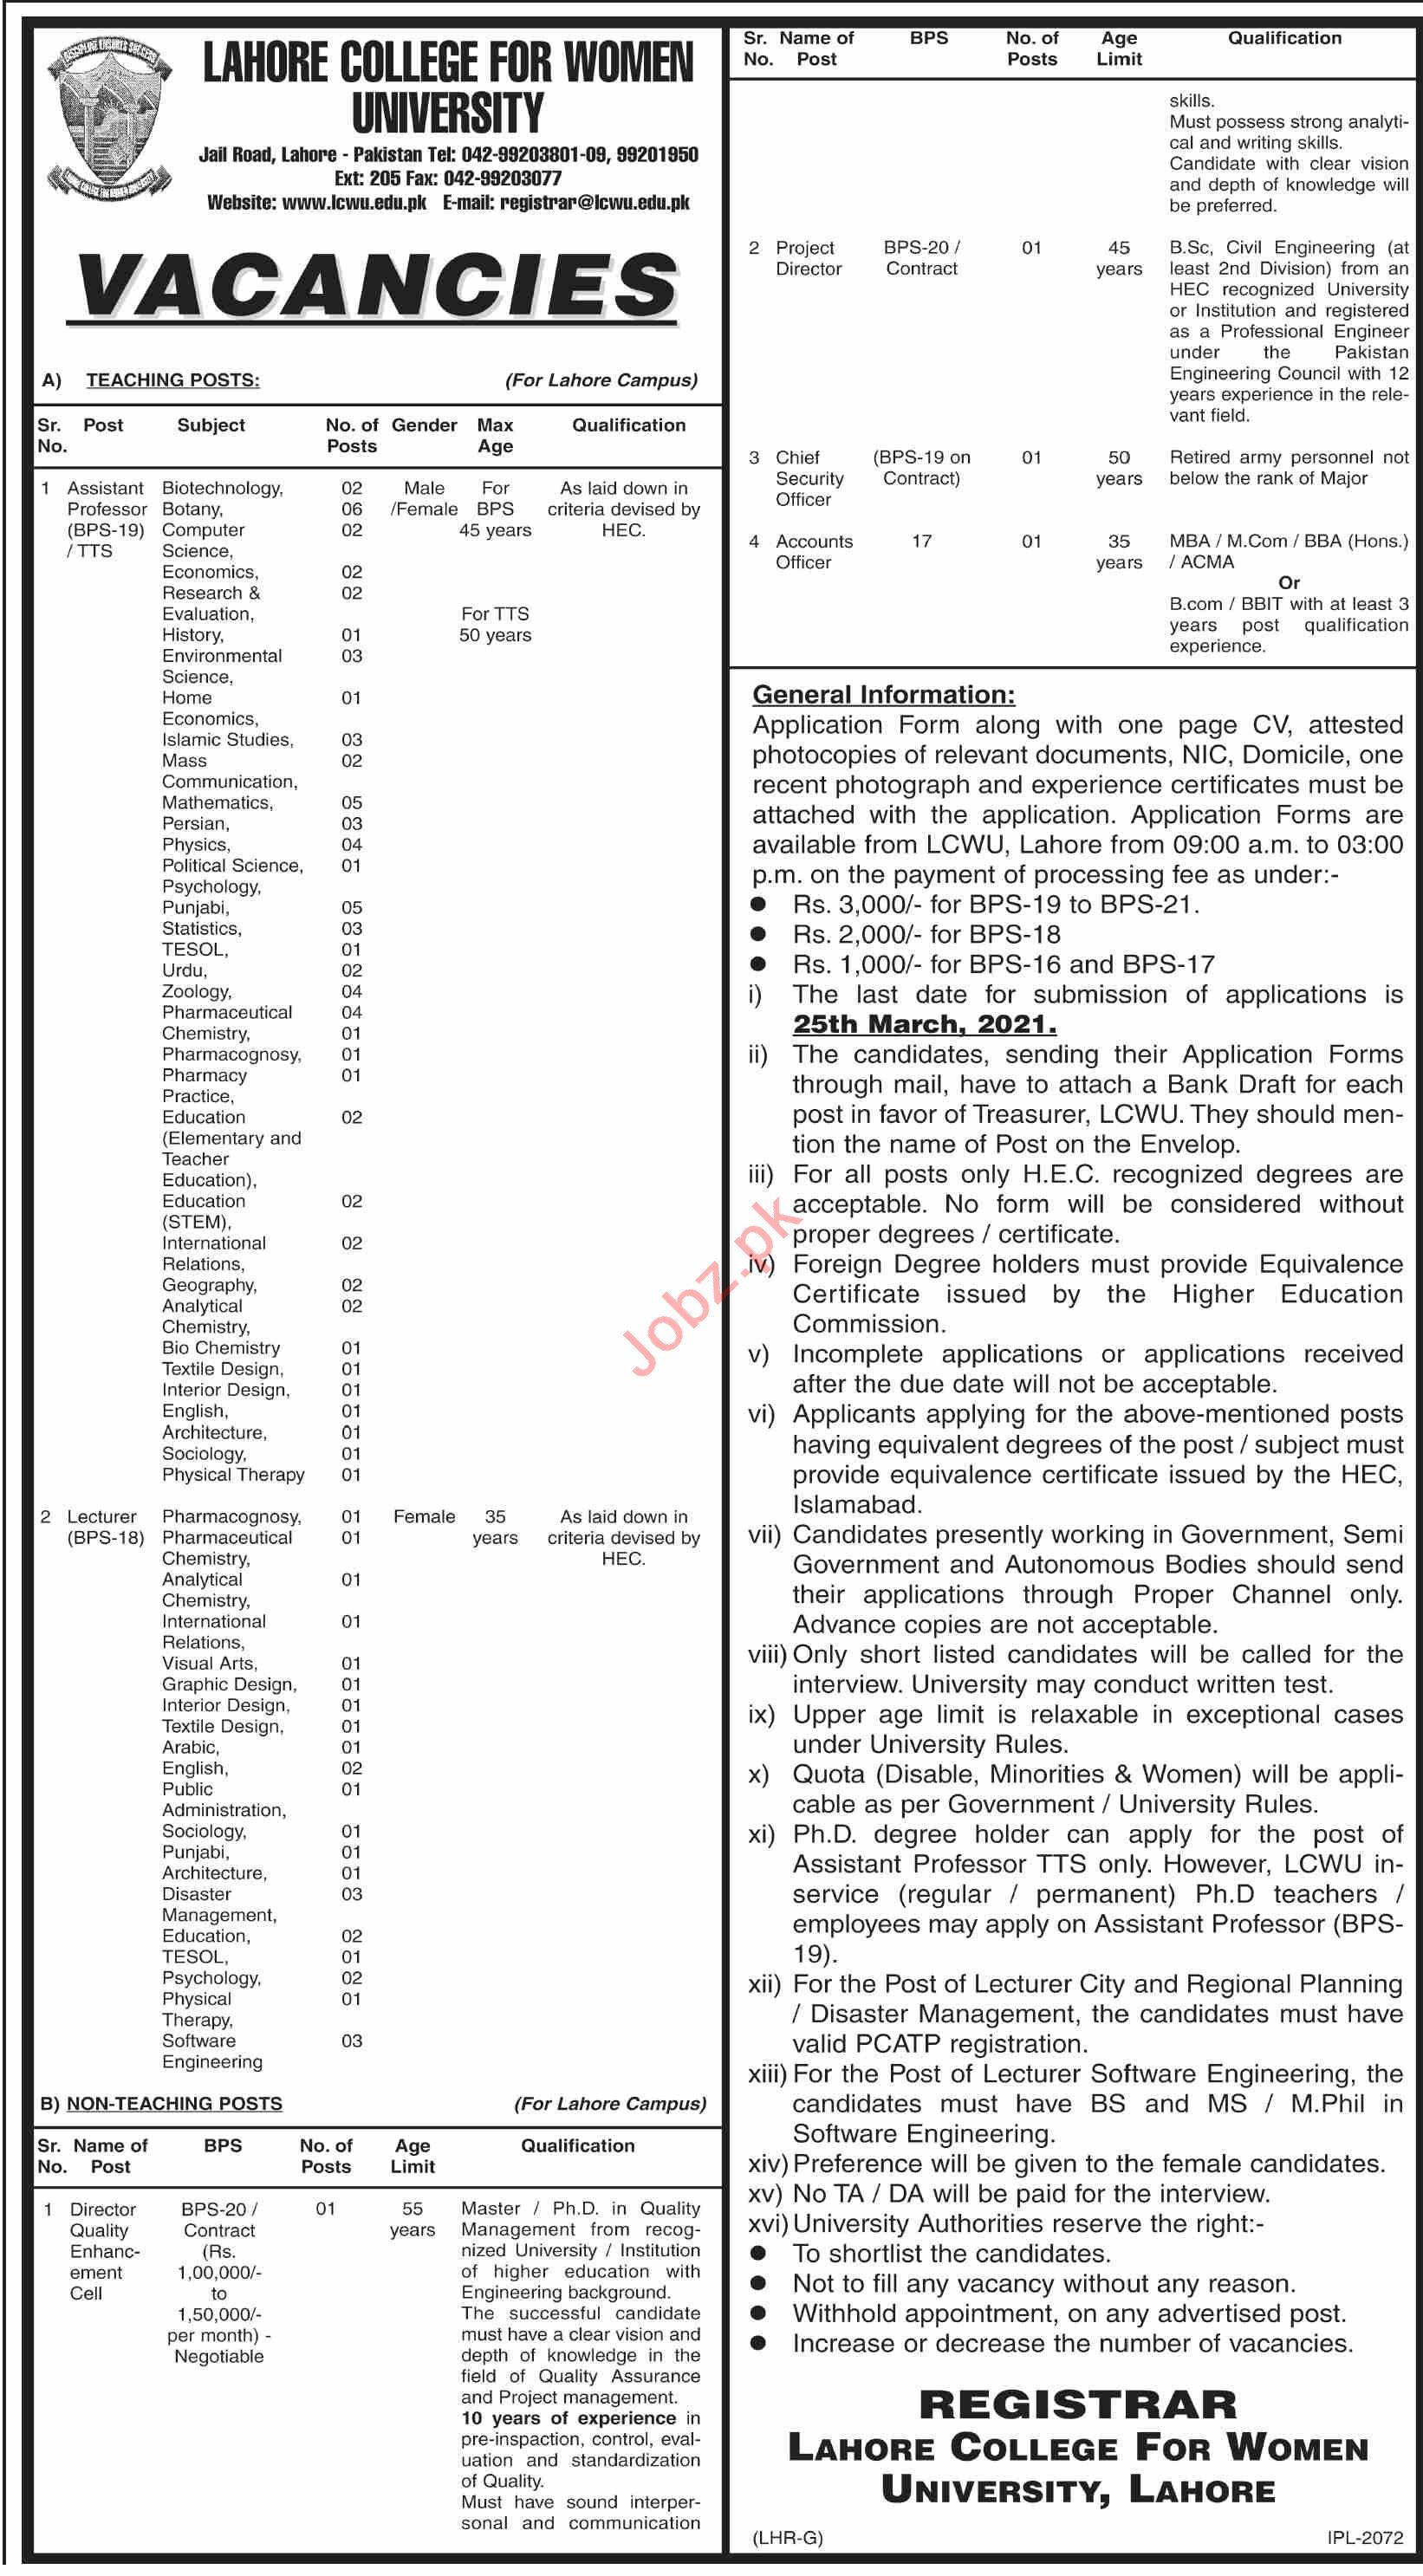 Lahore College for Women University LCWU Jobs for Lecturers